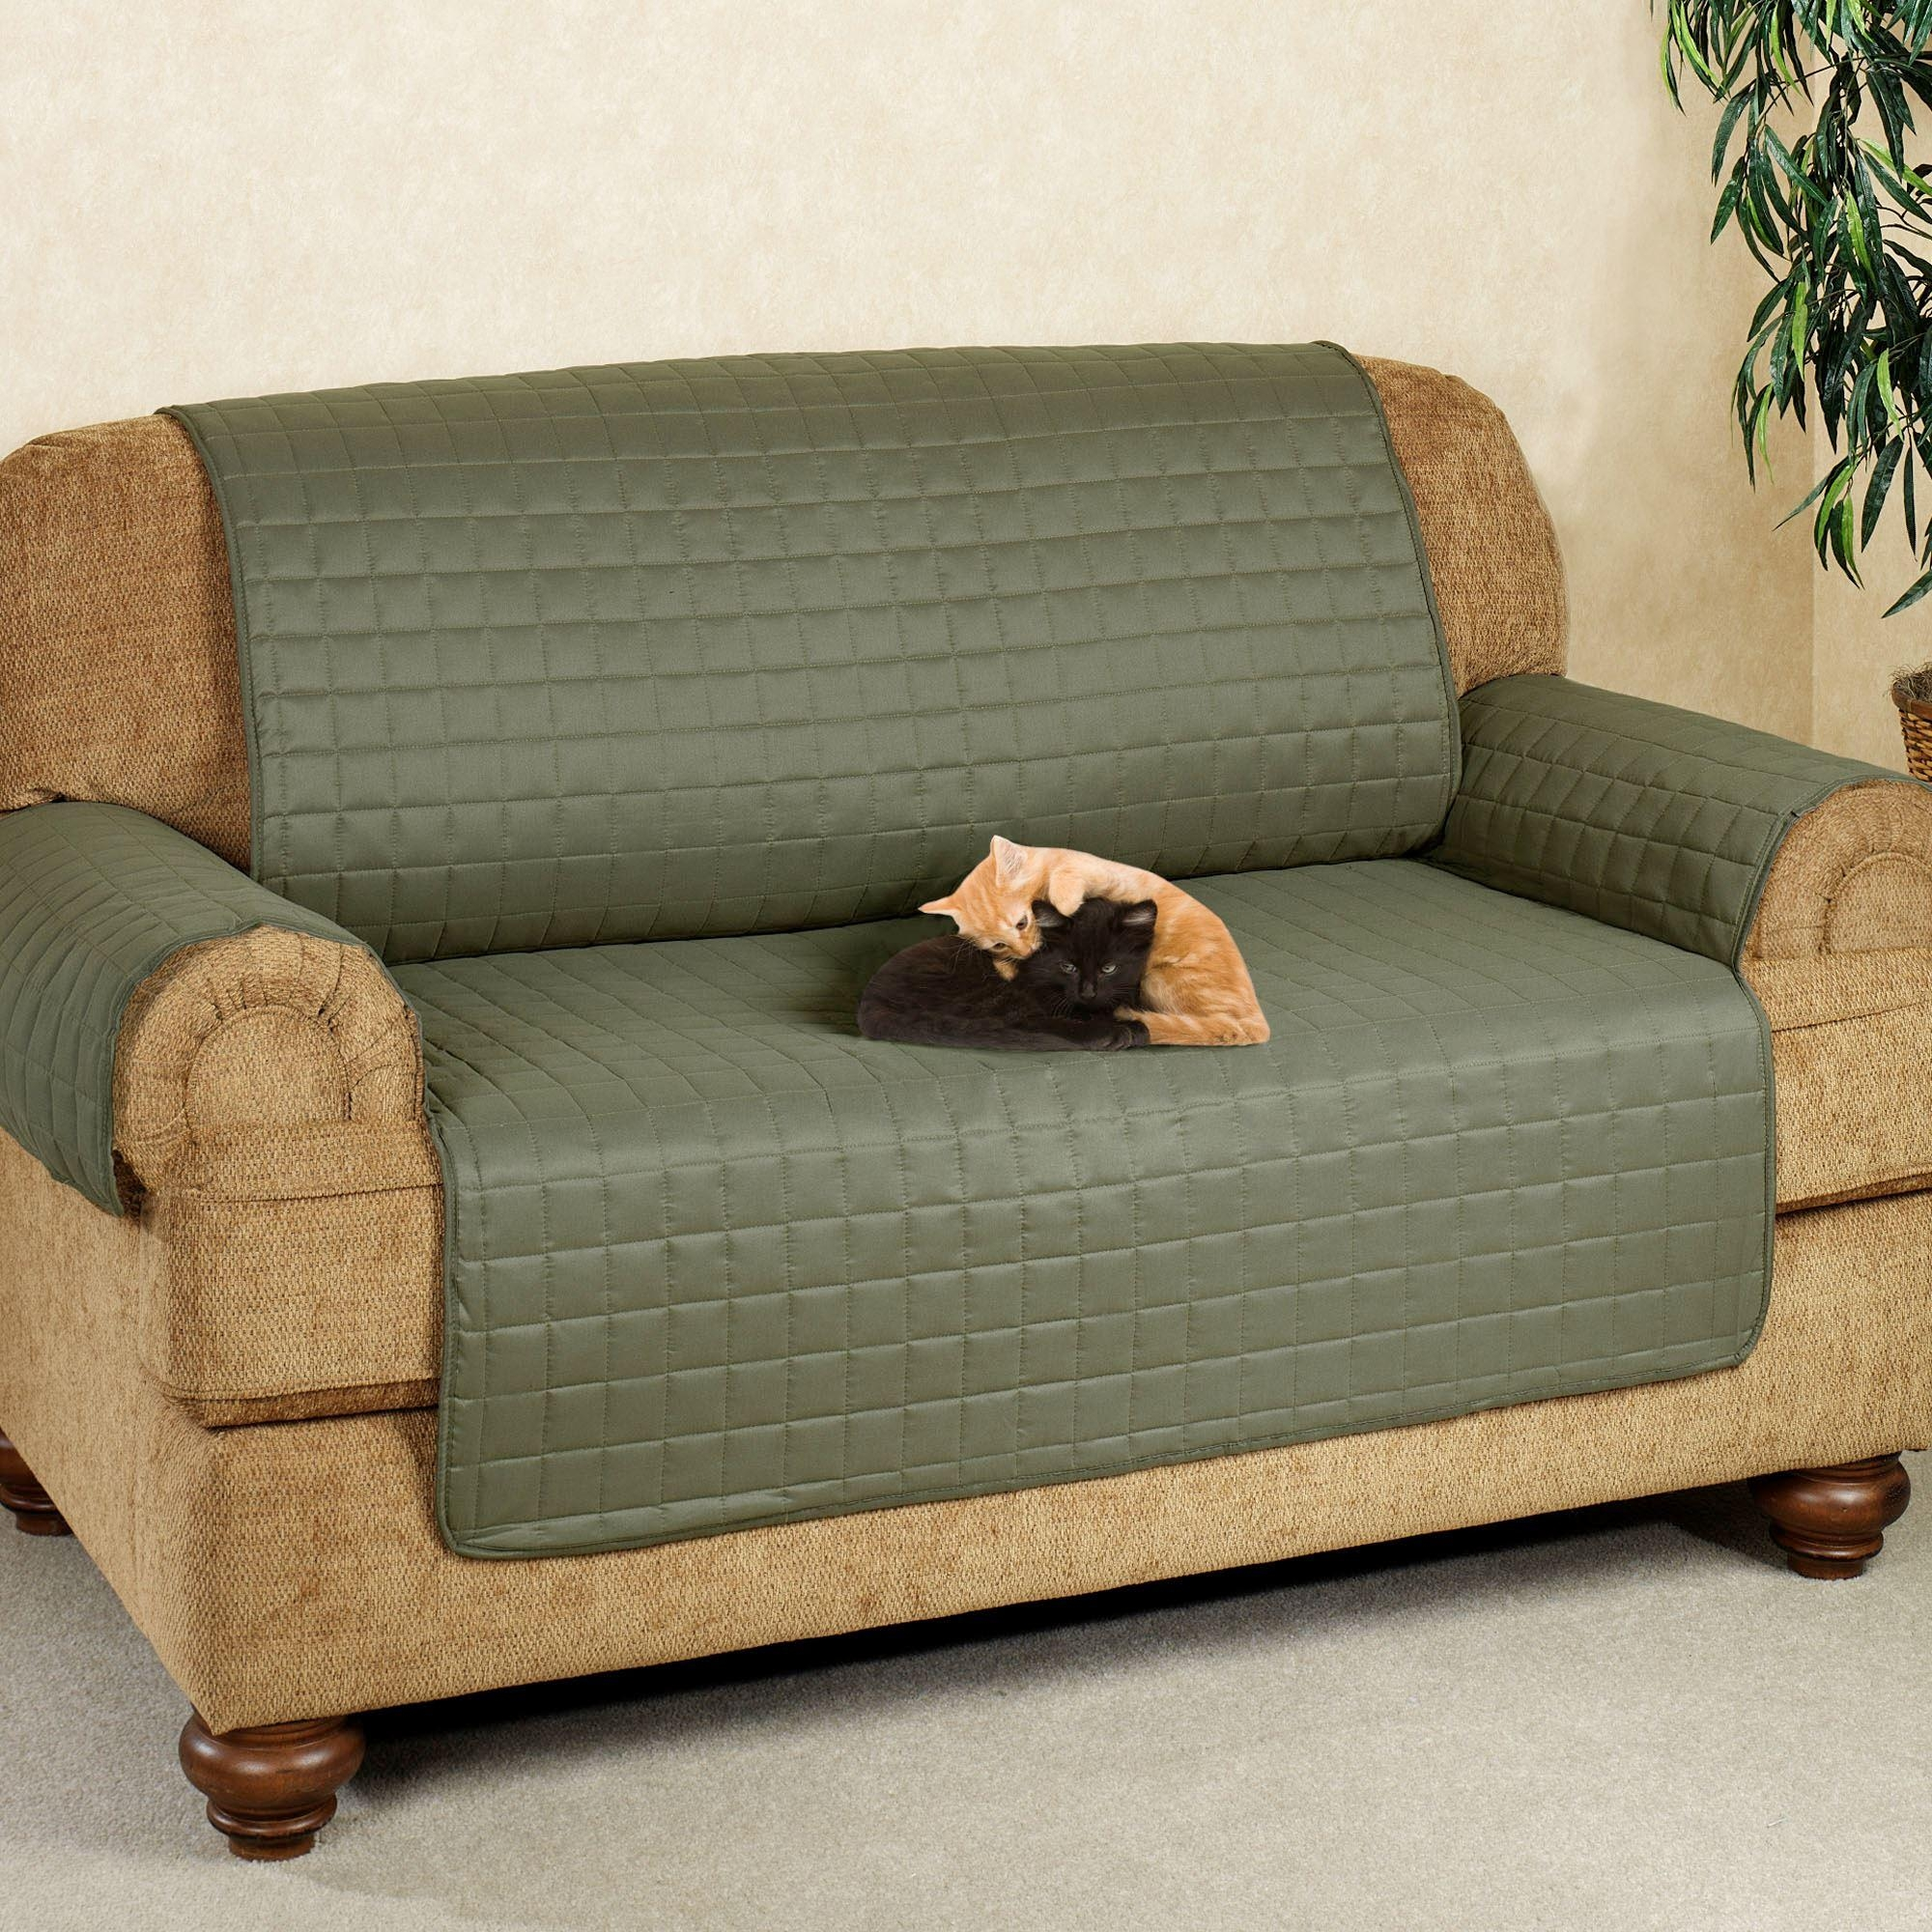 Sofas Center : Sofa Covers For Dogs Cool On Modern Home Decor Intended For Sofas For Dogs (Image 16 of 20)